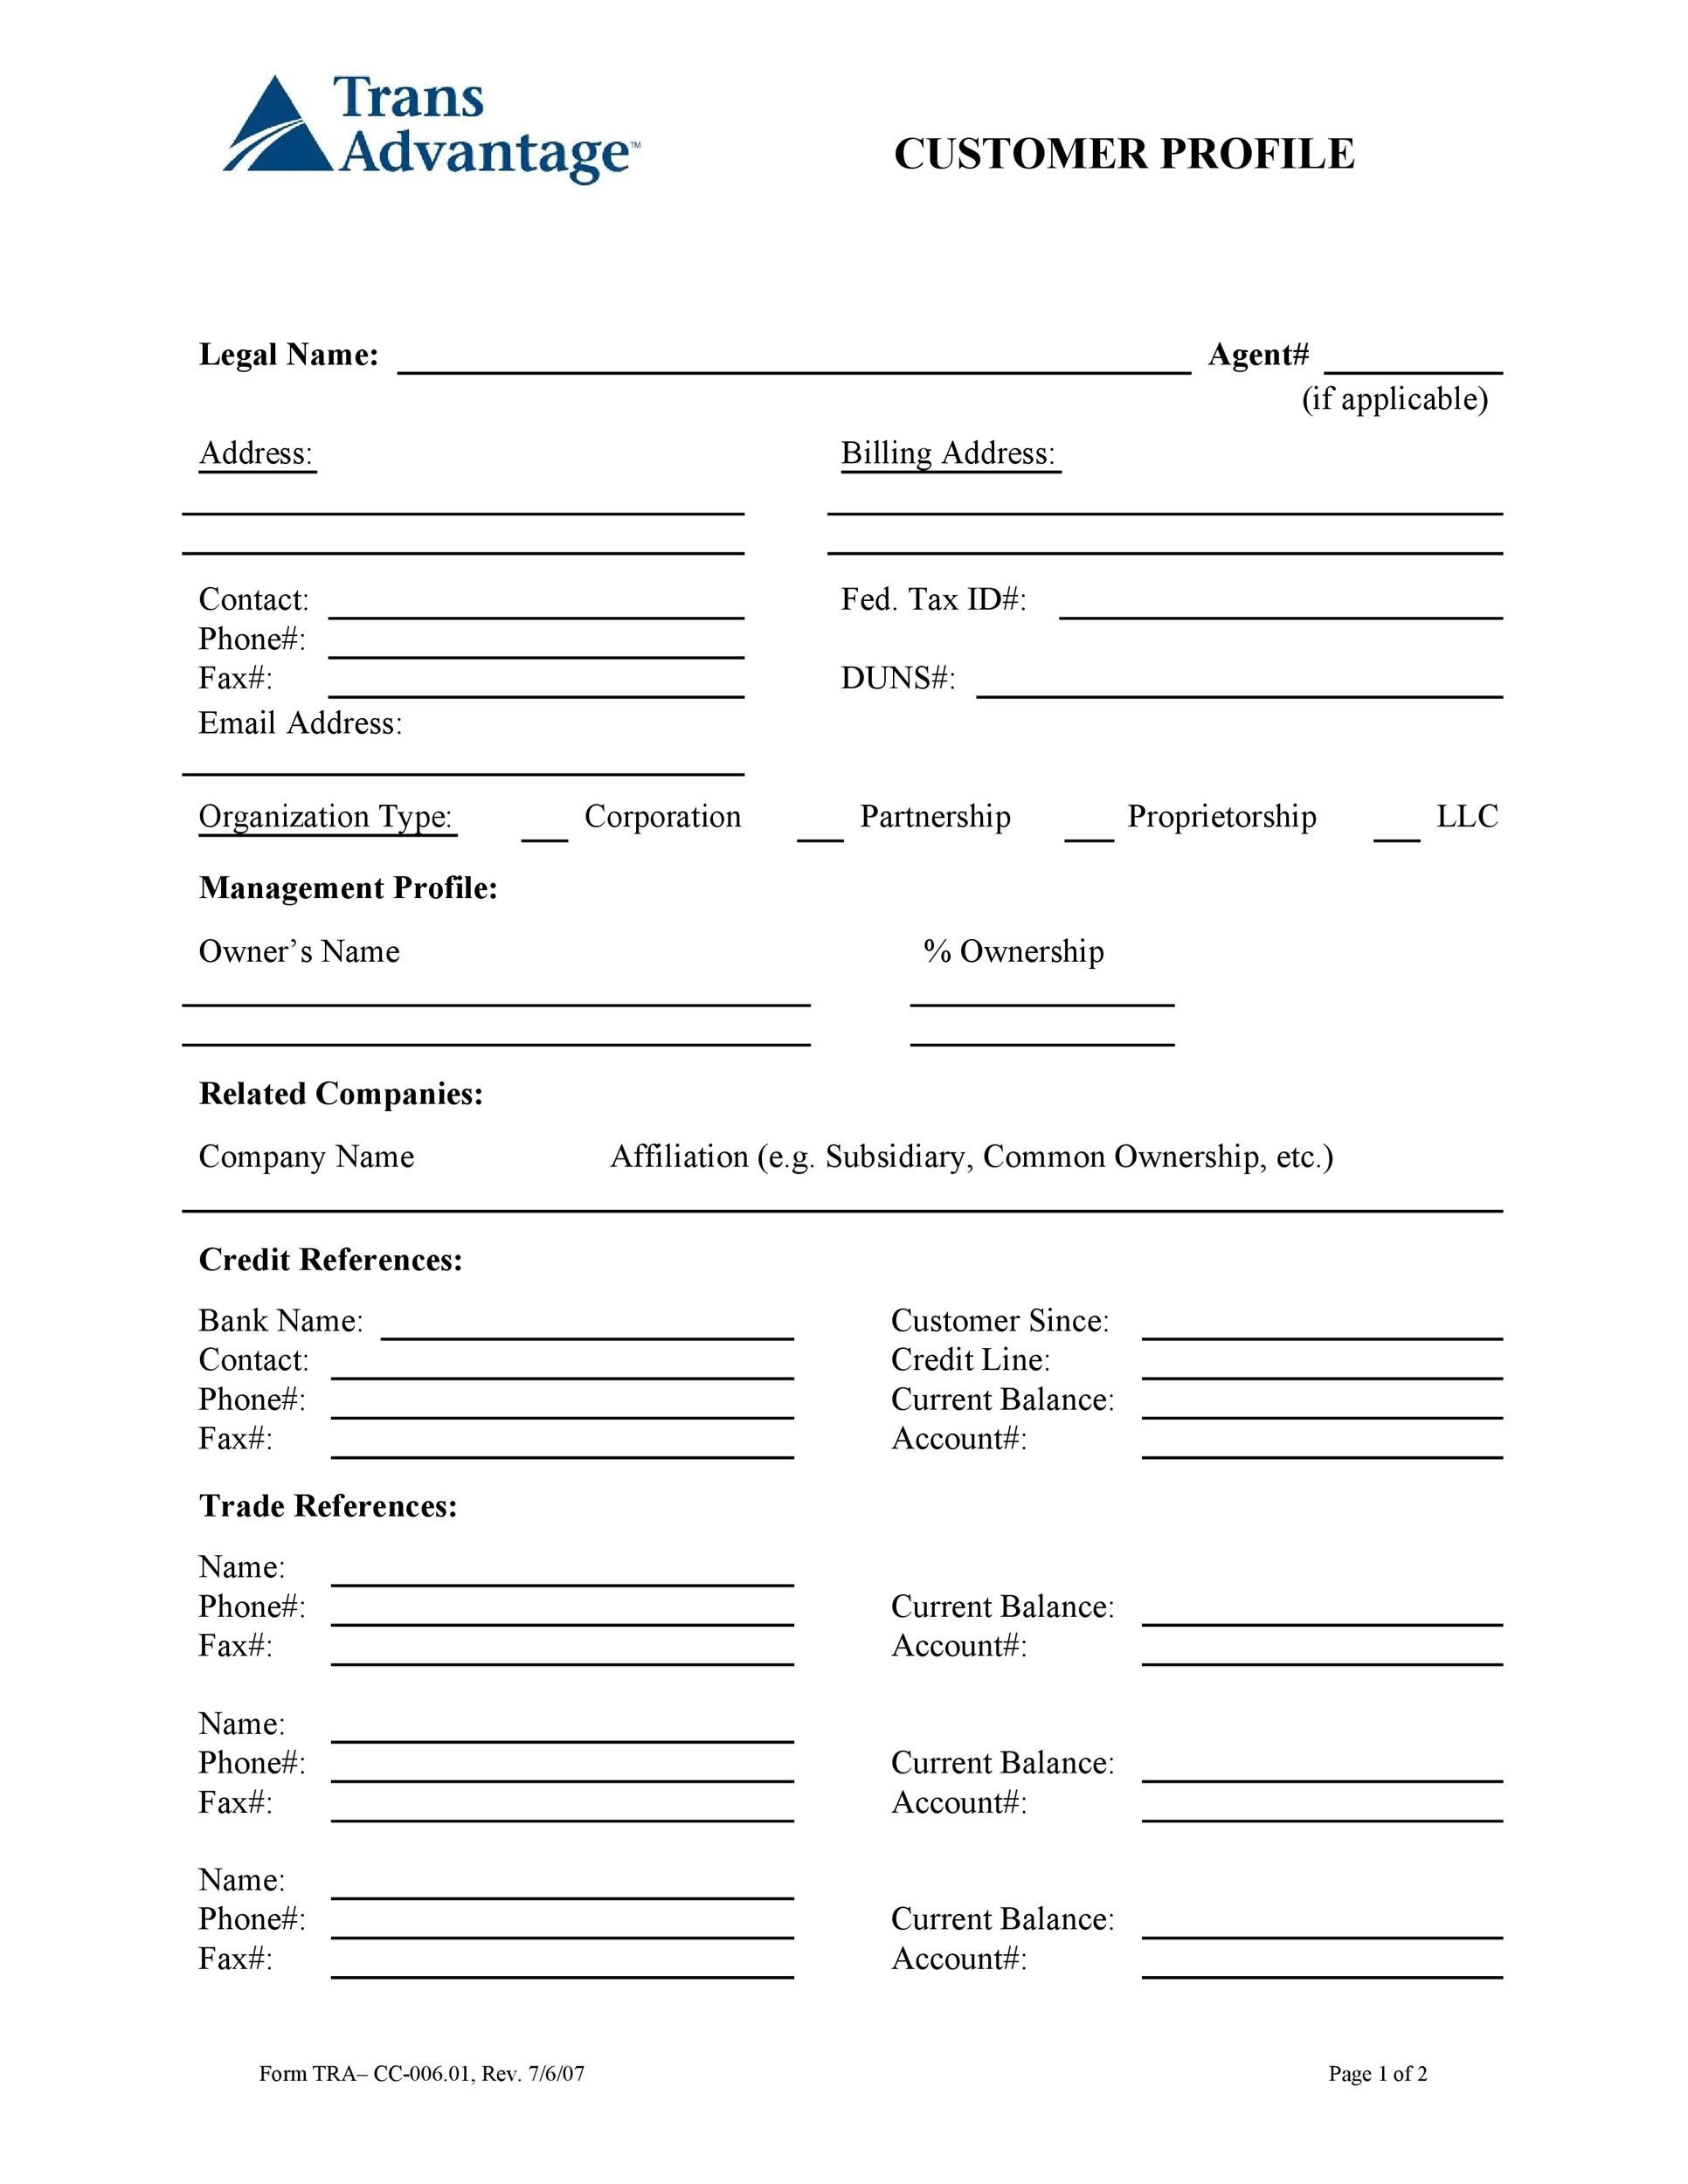 Free customer profile template 18